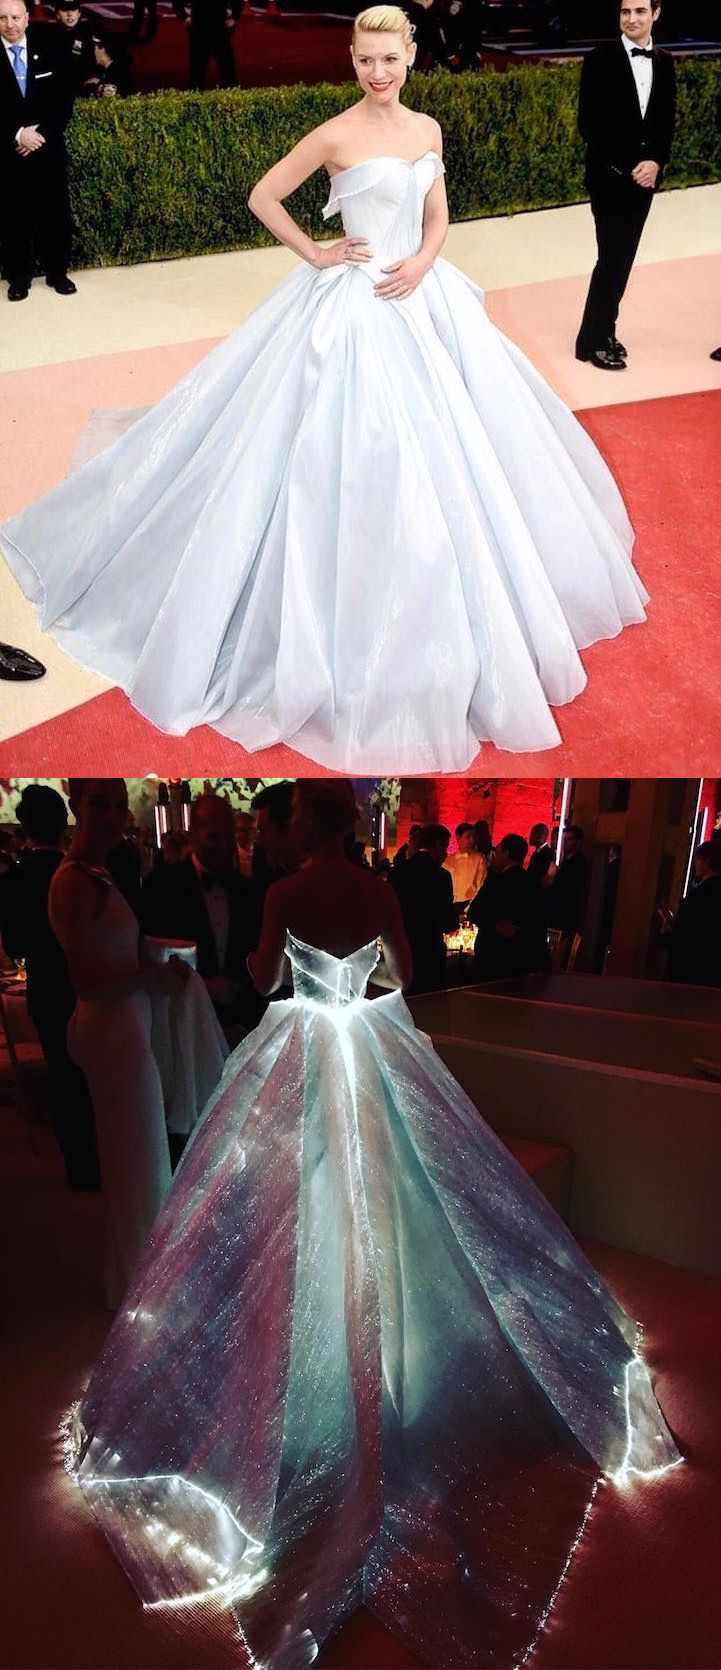 The best images about dress on pinterest beach dresses gowns